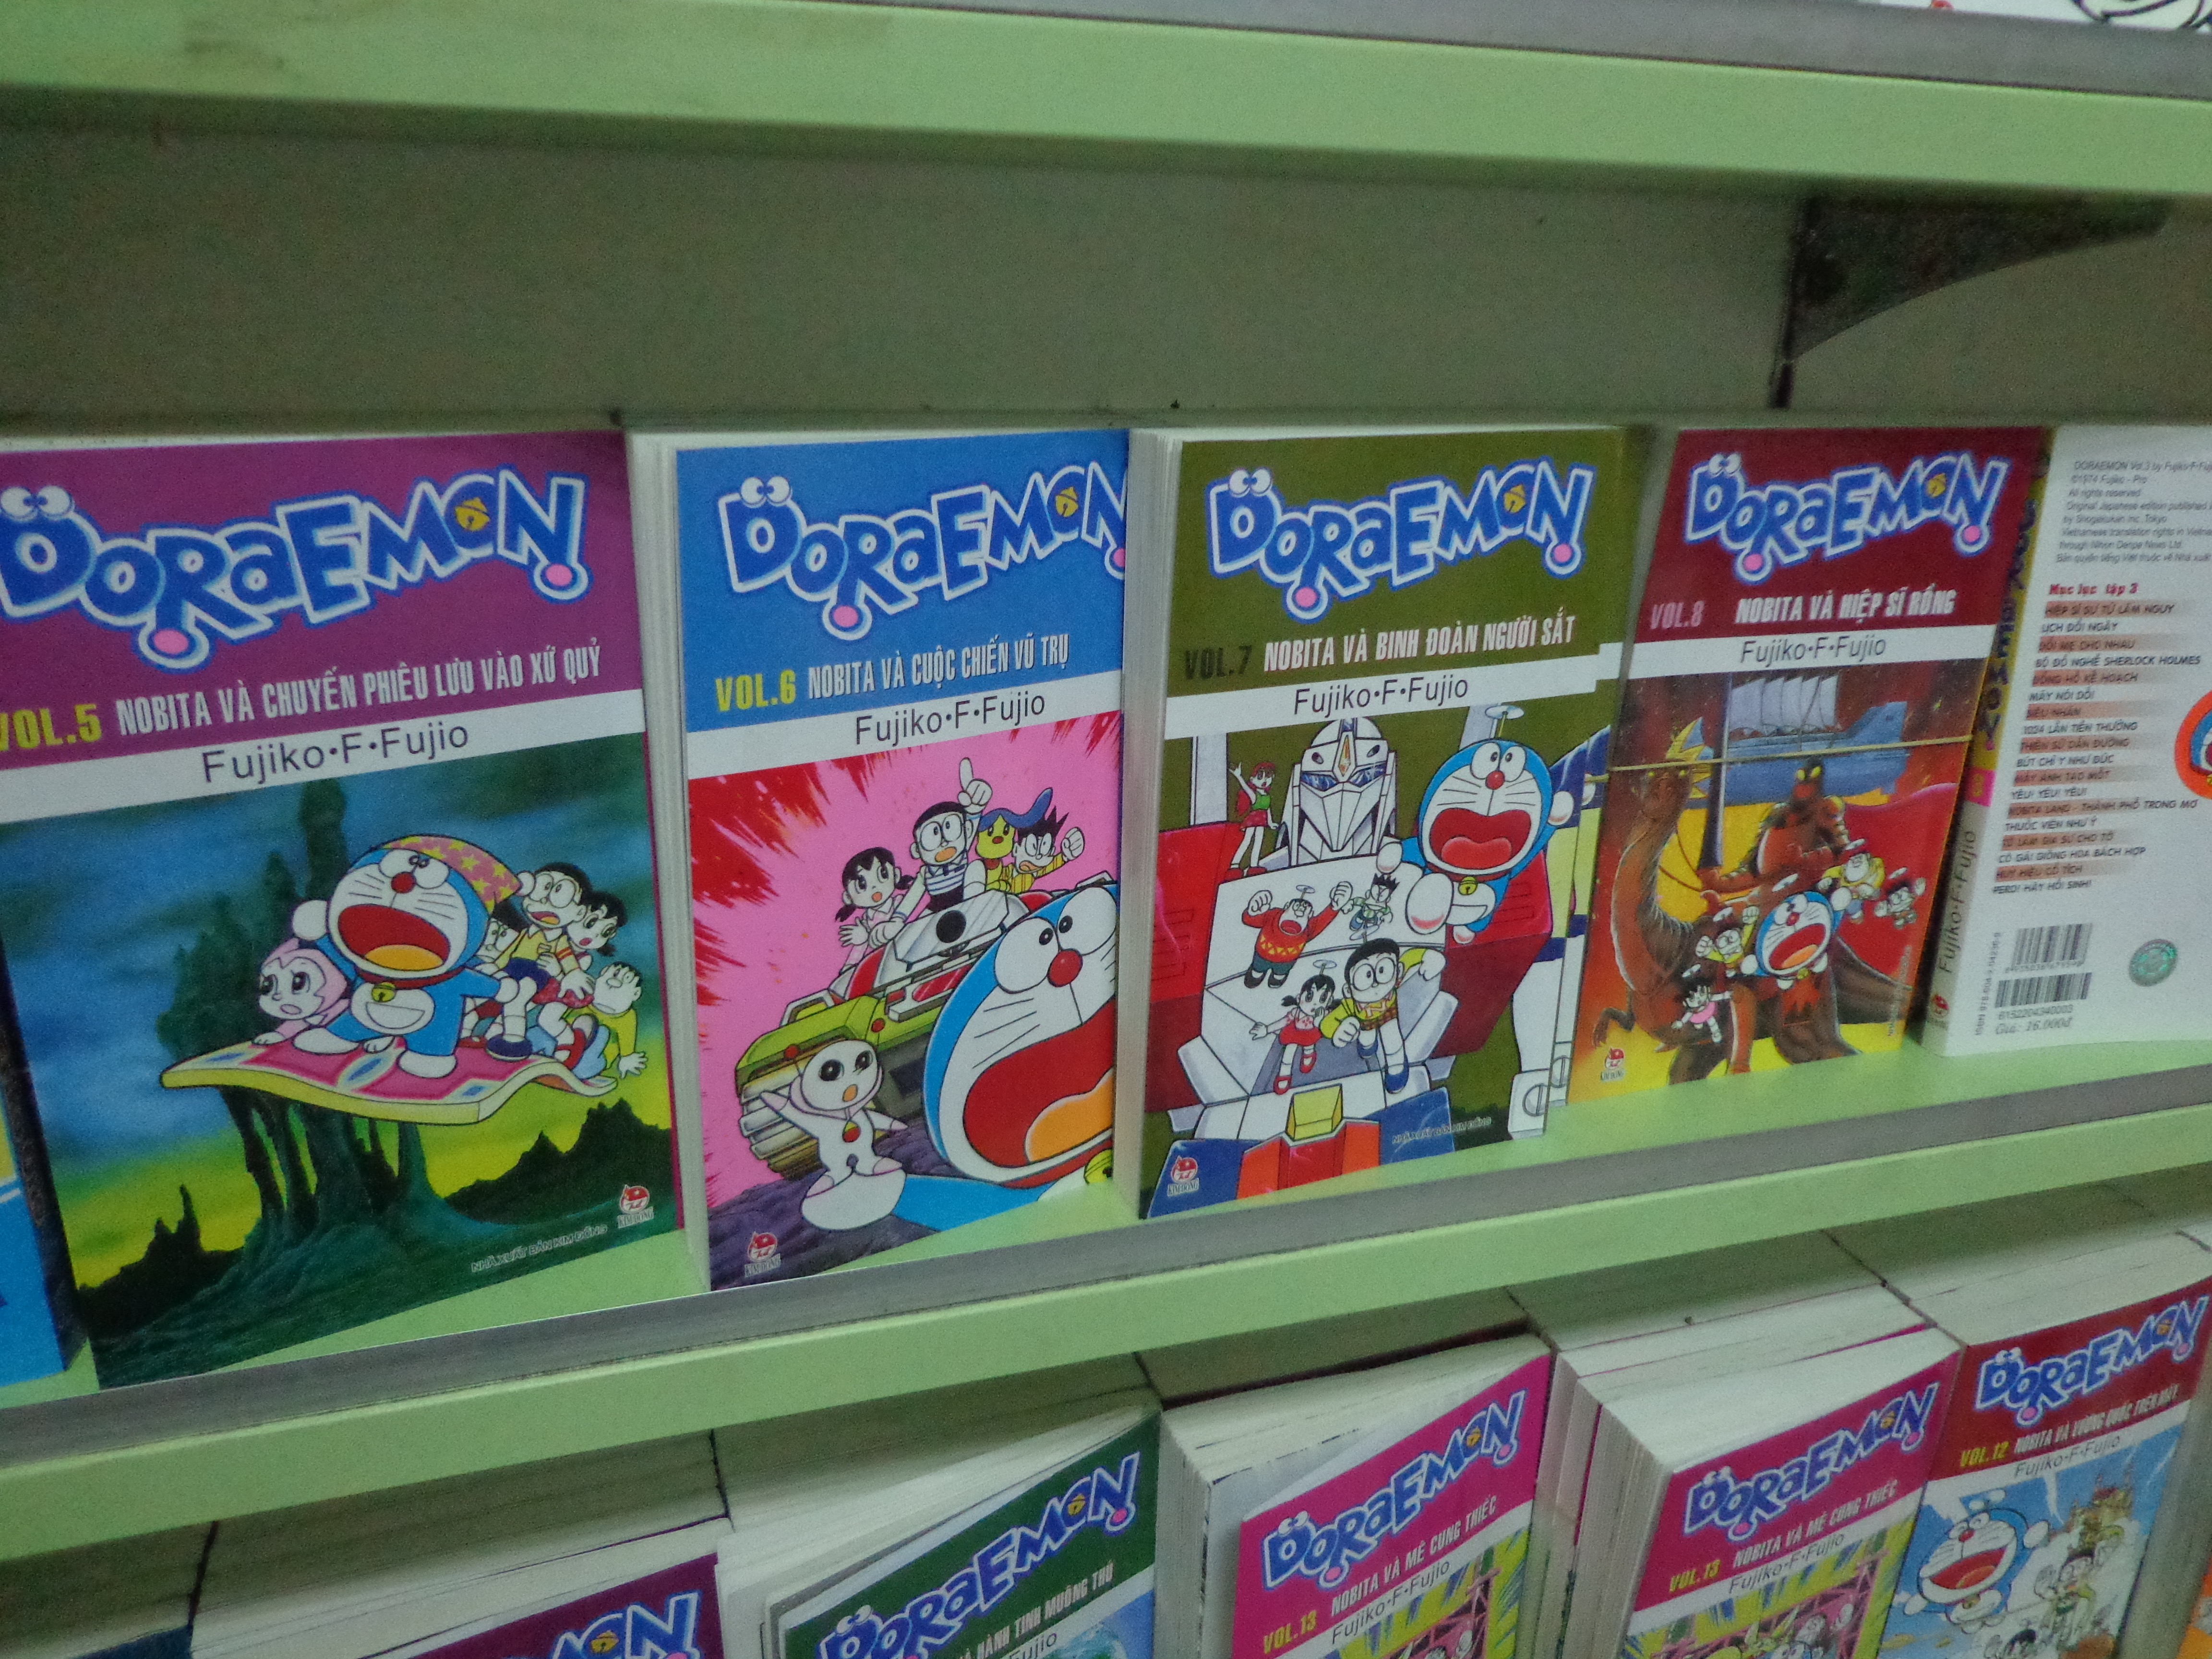 Doraemon - It's as famous in Vietnam as in Japan and in India! I am surprised that no Hindi publisher has taken pains to translate Doraemon mangas into Hindi.